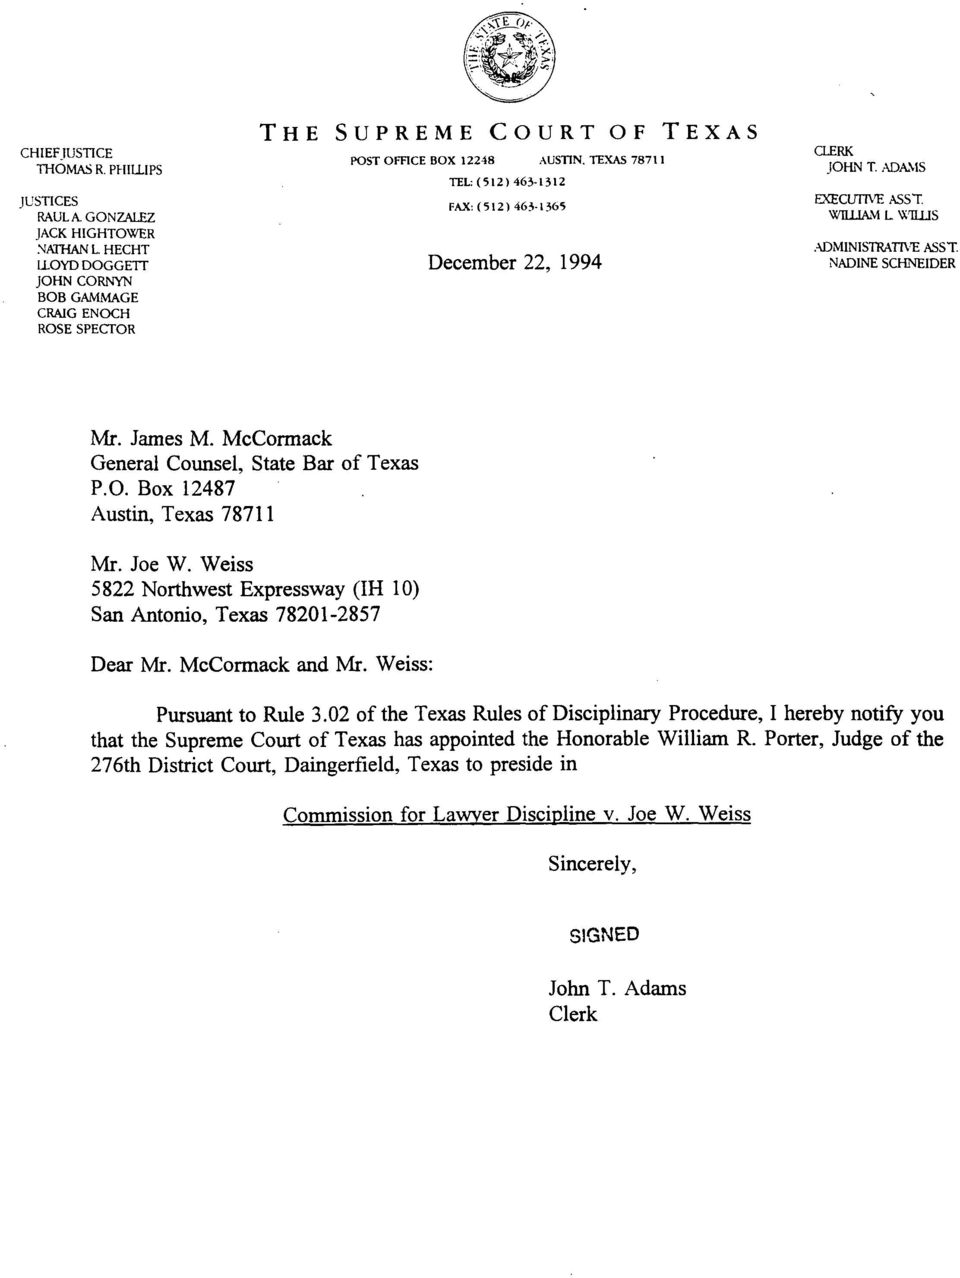 TEXAS 78711 TEL: (512 ) 463-1312 FAX:(5l2)463-1365 December 22, 1994 CLERK JOHN T. ADA.1S EXECUTIVE ASST. WIILIAM L WILLIS.ADMINISTRATIVE ASST. NADINE SCHNEIDER Mr. James M.